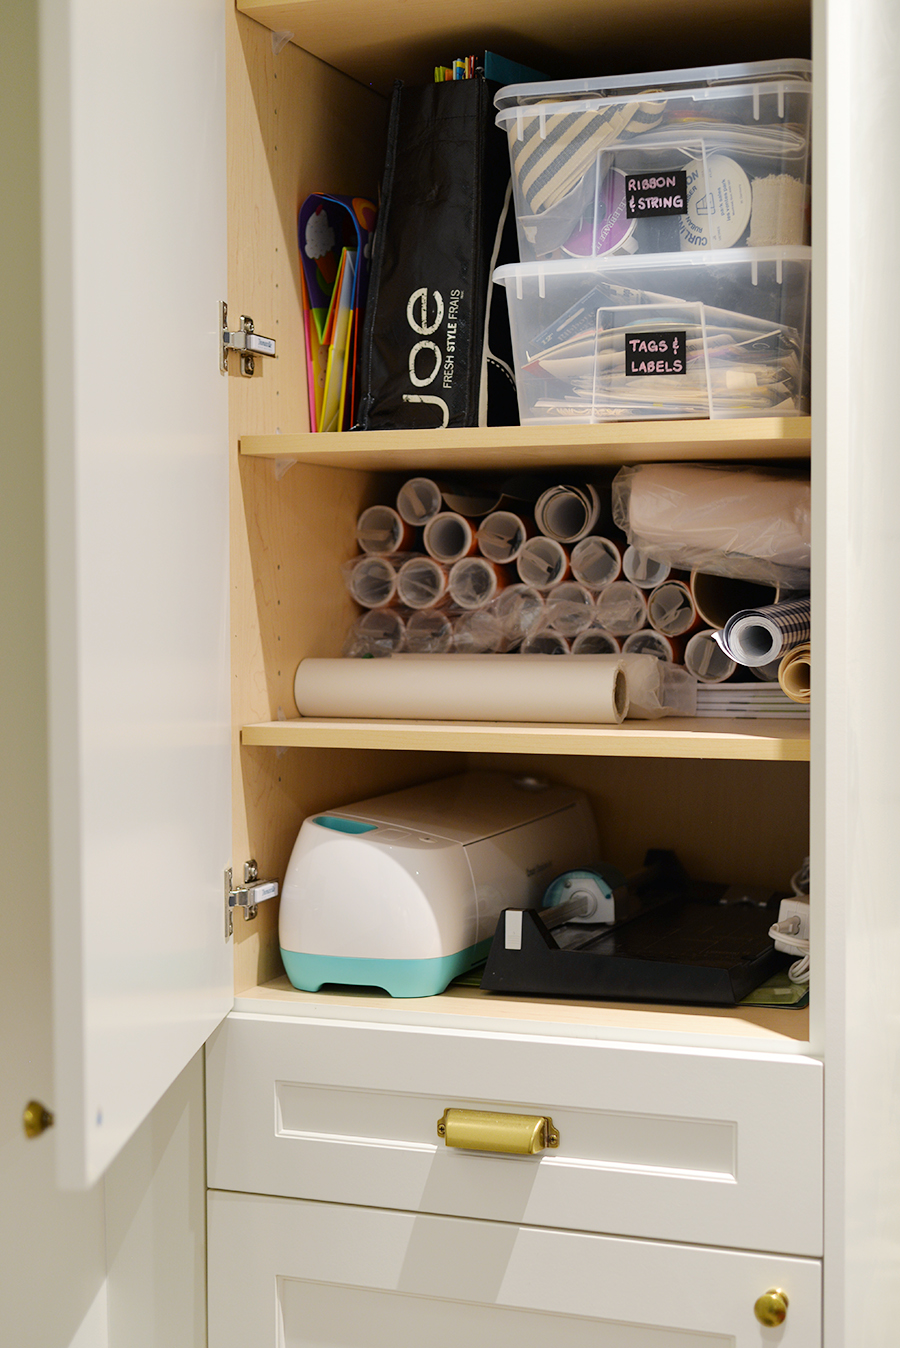 craft room organization tips, storage supplies, what kind of containers to use for crafts